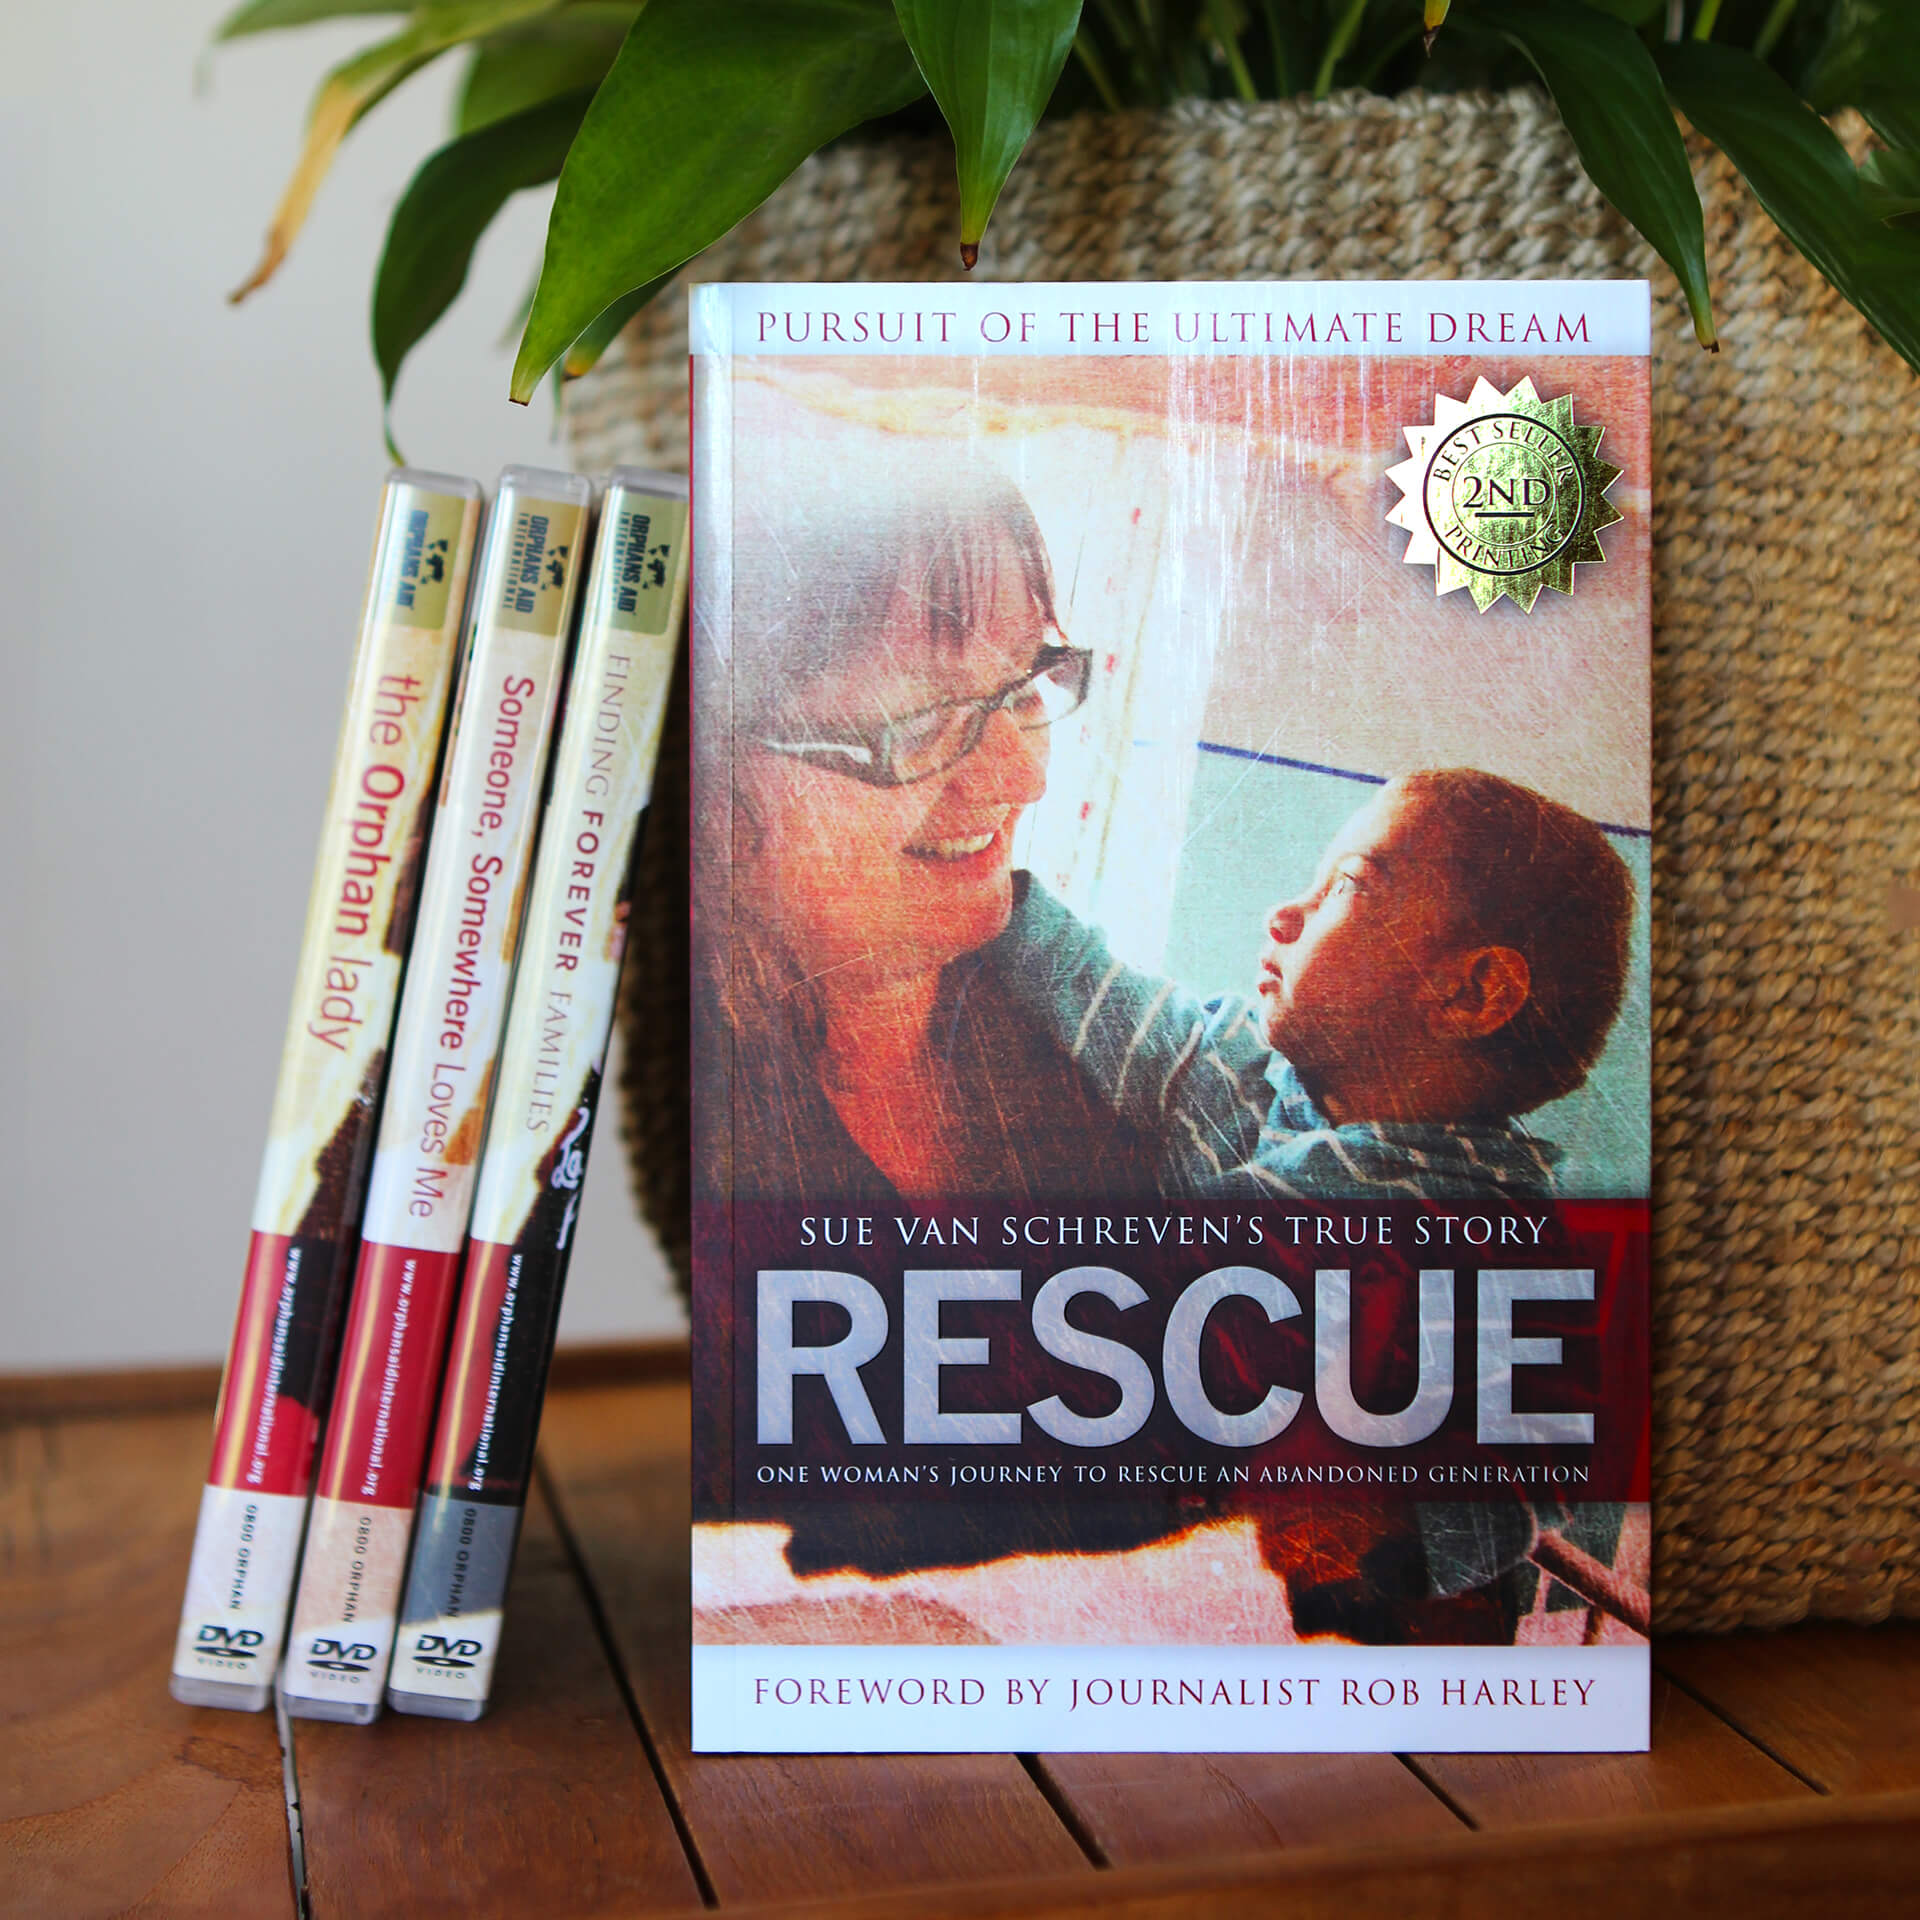 Rescue: Pursuit of the Ultimate Dream, by Sue van Schreven. RRP NZ $29.99, ISBN: 978-0-473-18976-1.   180 Pages including 24 Full Colour Pages.